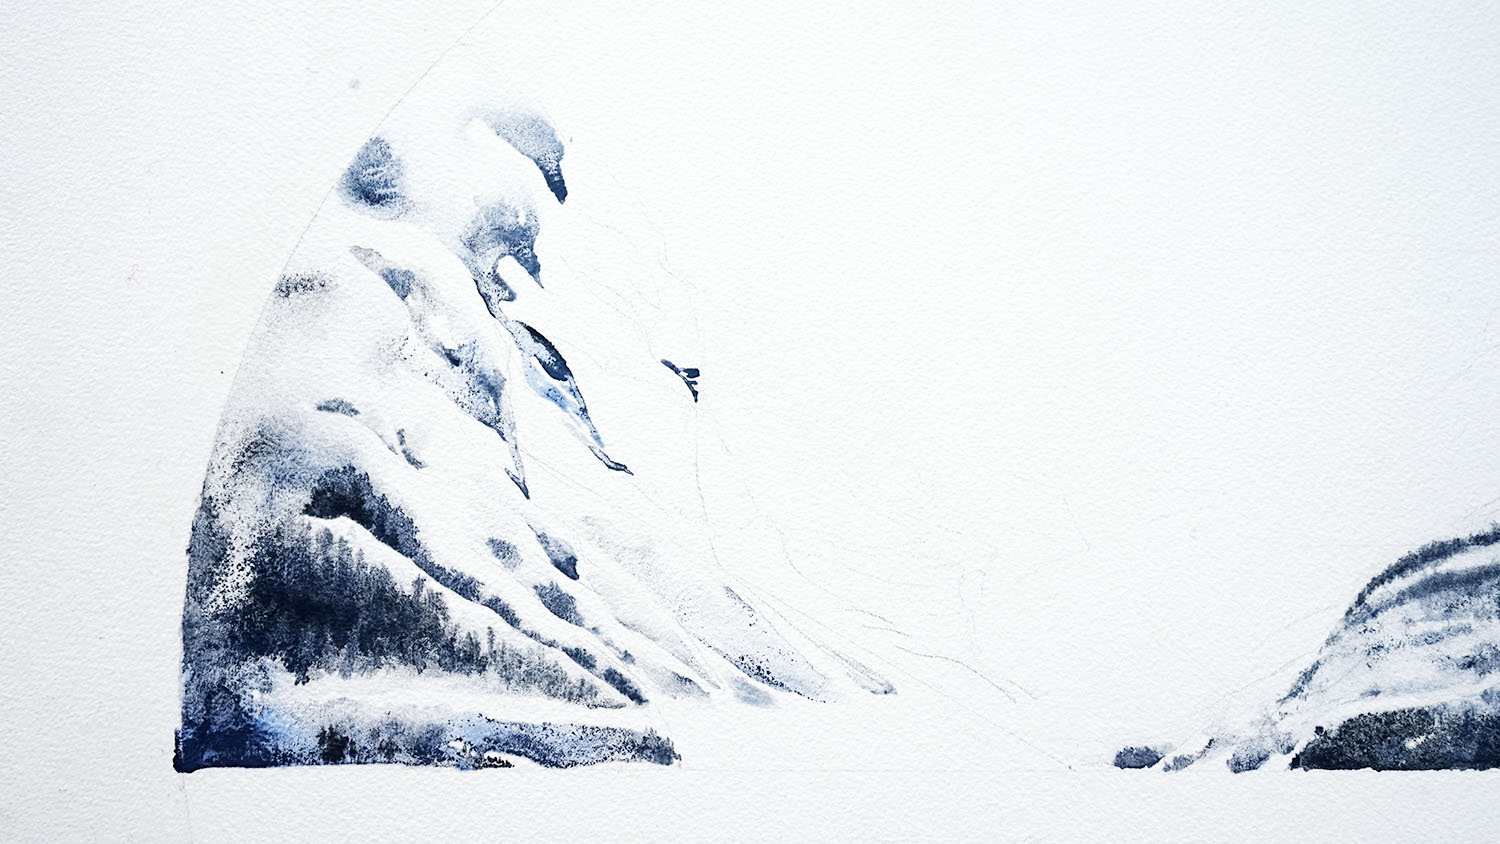 lake louise painting process by wanru kemp 4419s.jpg